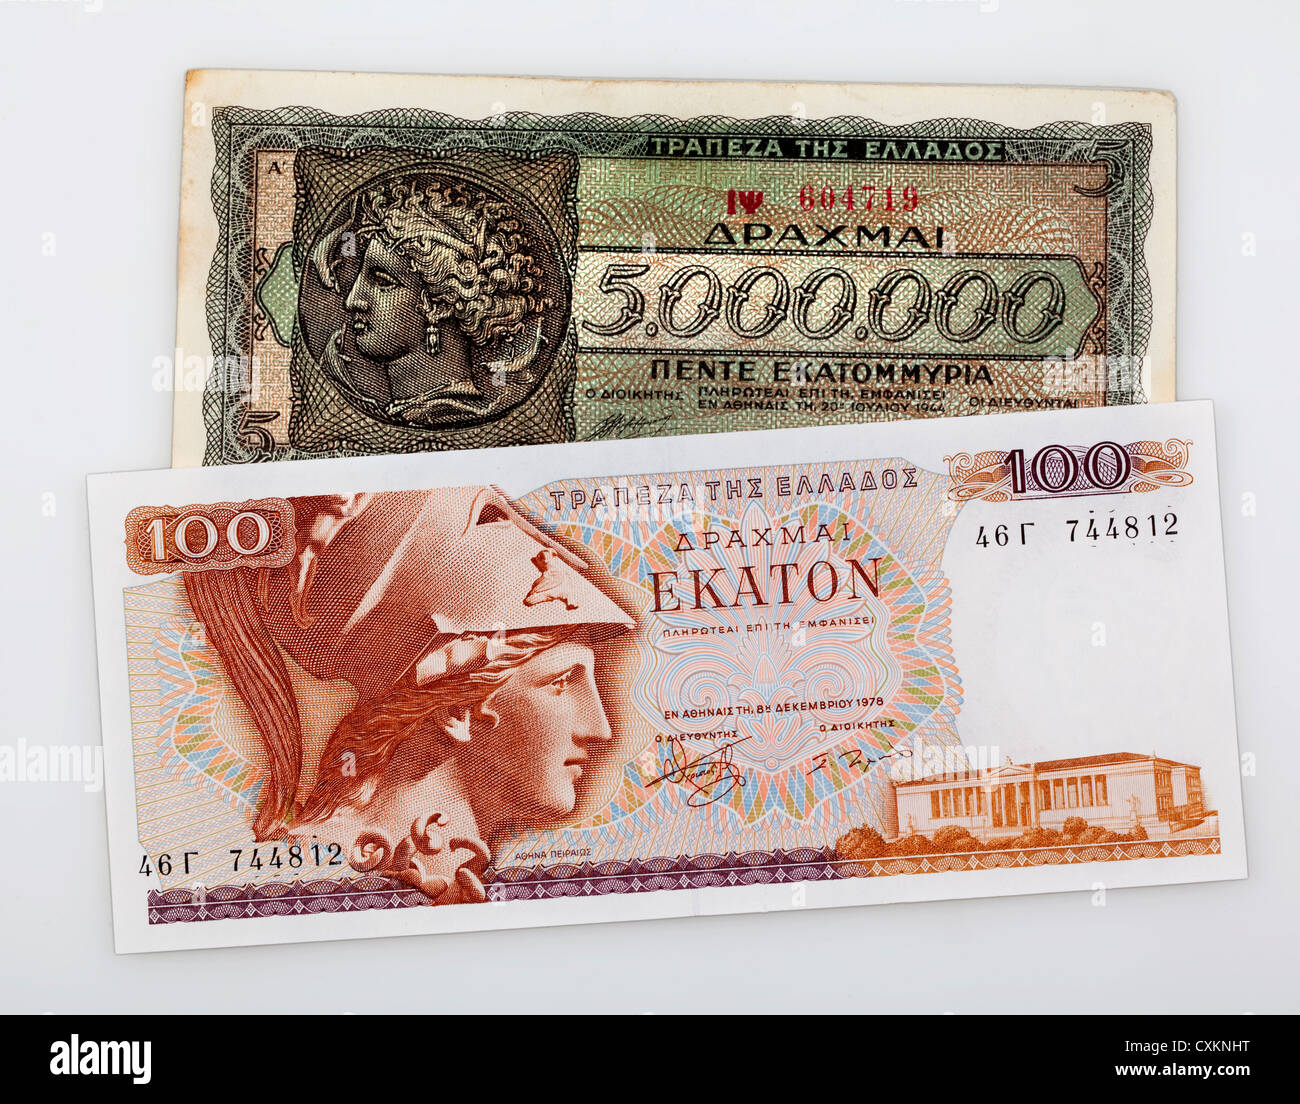 Two historic bank notes from Greece, 100 drachmas of 1978 and inflation money of 1944, five million drachmas - Stock Image